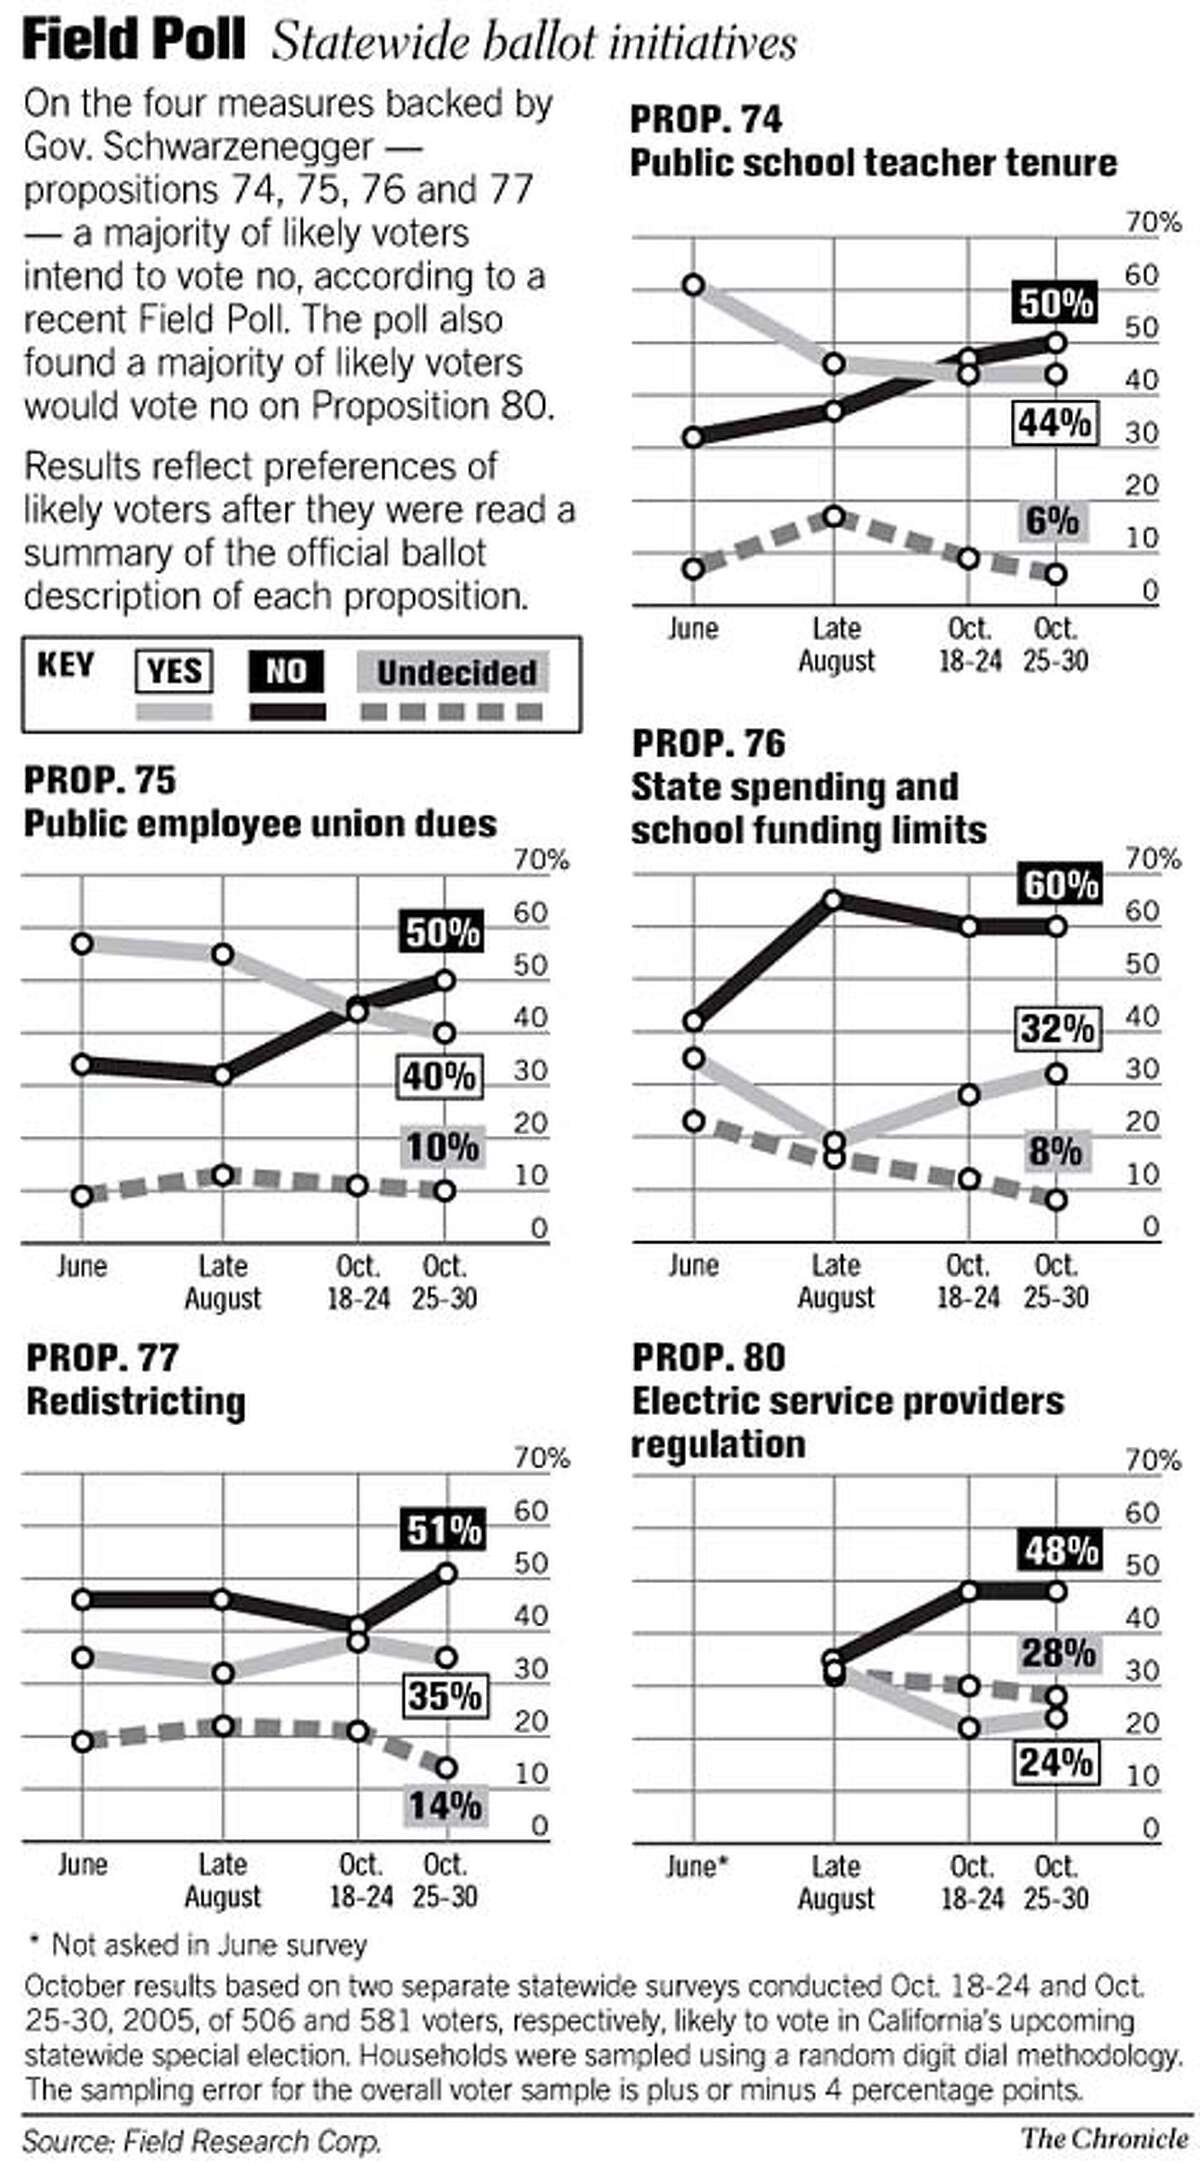 Field Poll / Statewide Ballot Initiatives. Chronicle Graphic